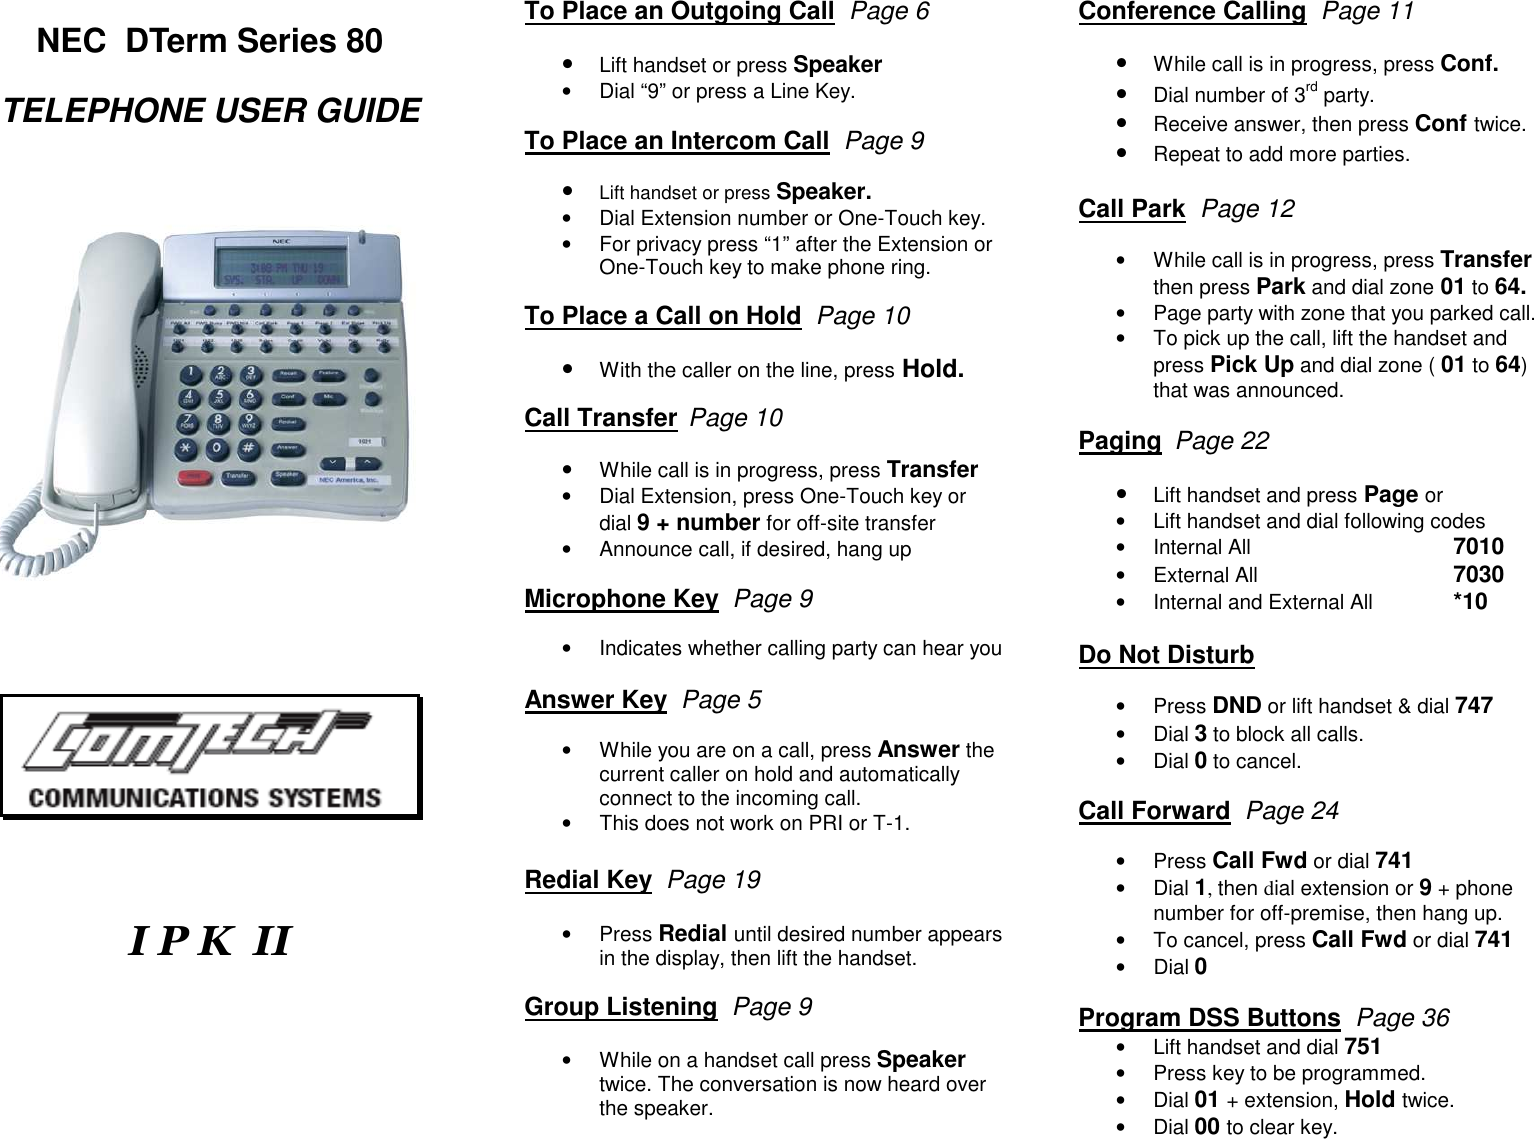 Nec Dterm Series 80 Owners Manual IPKII REFERENCE